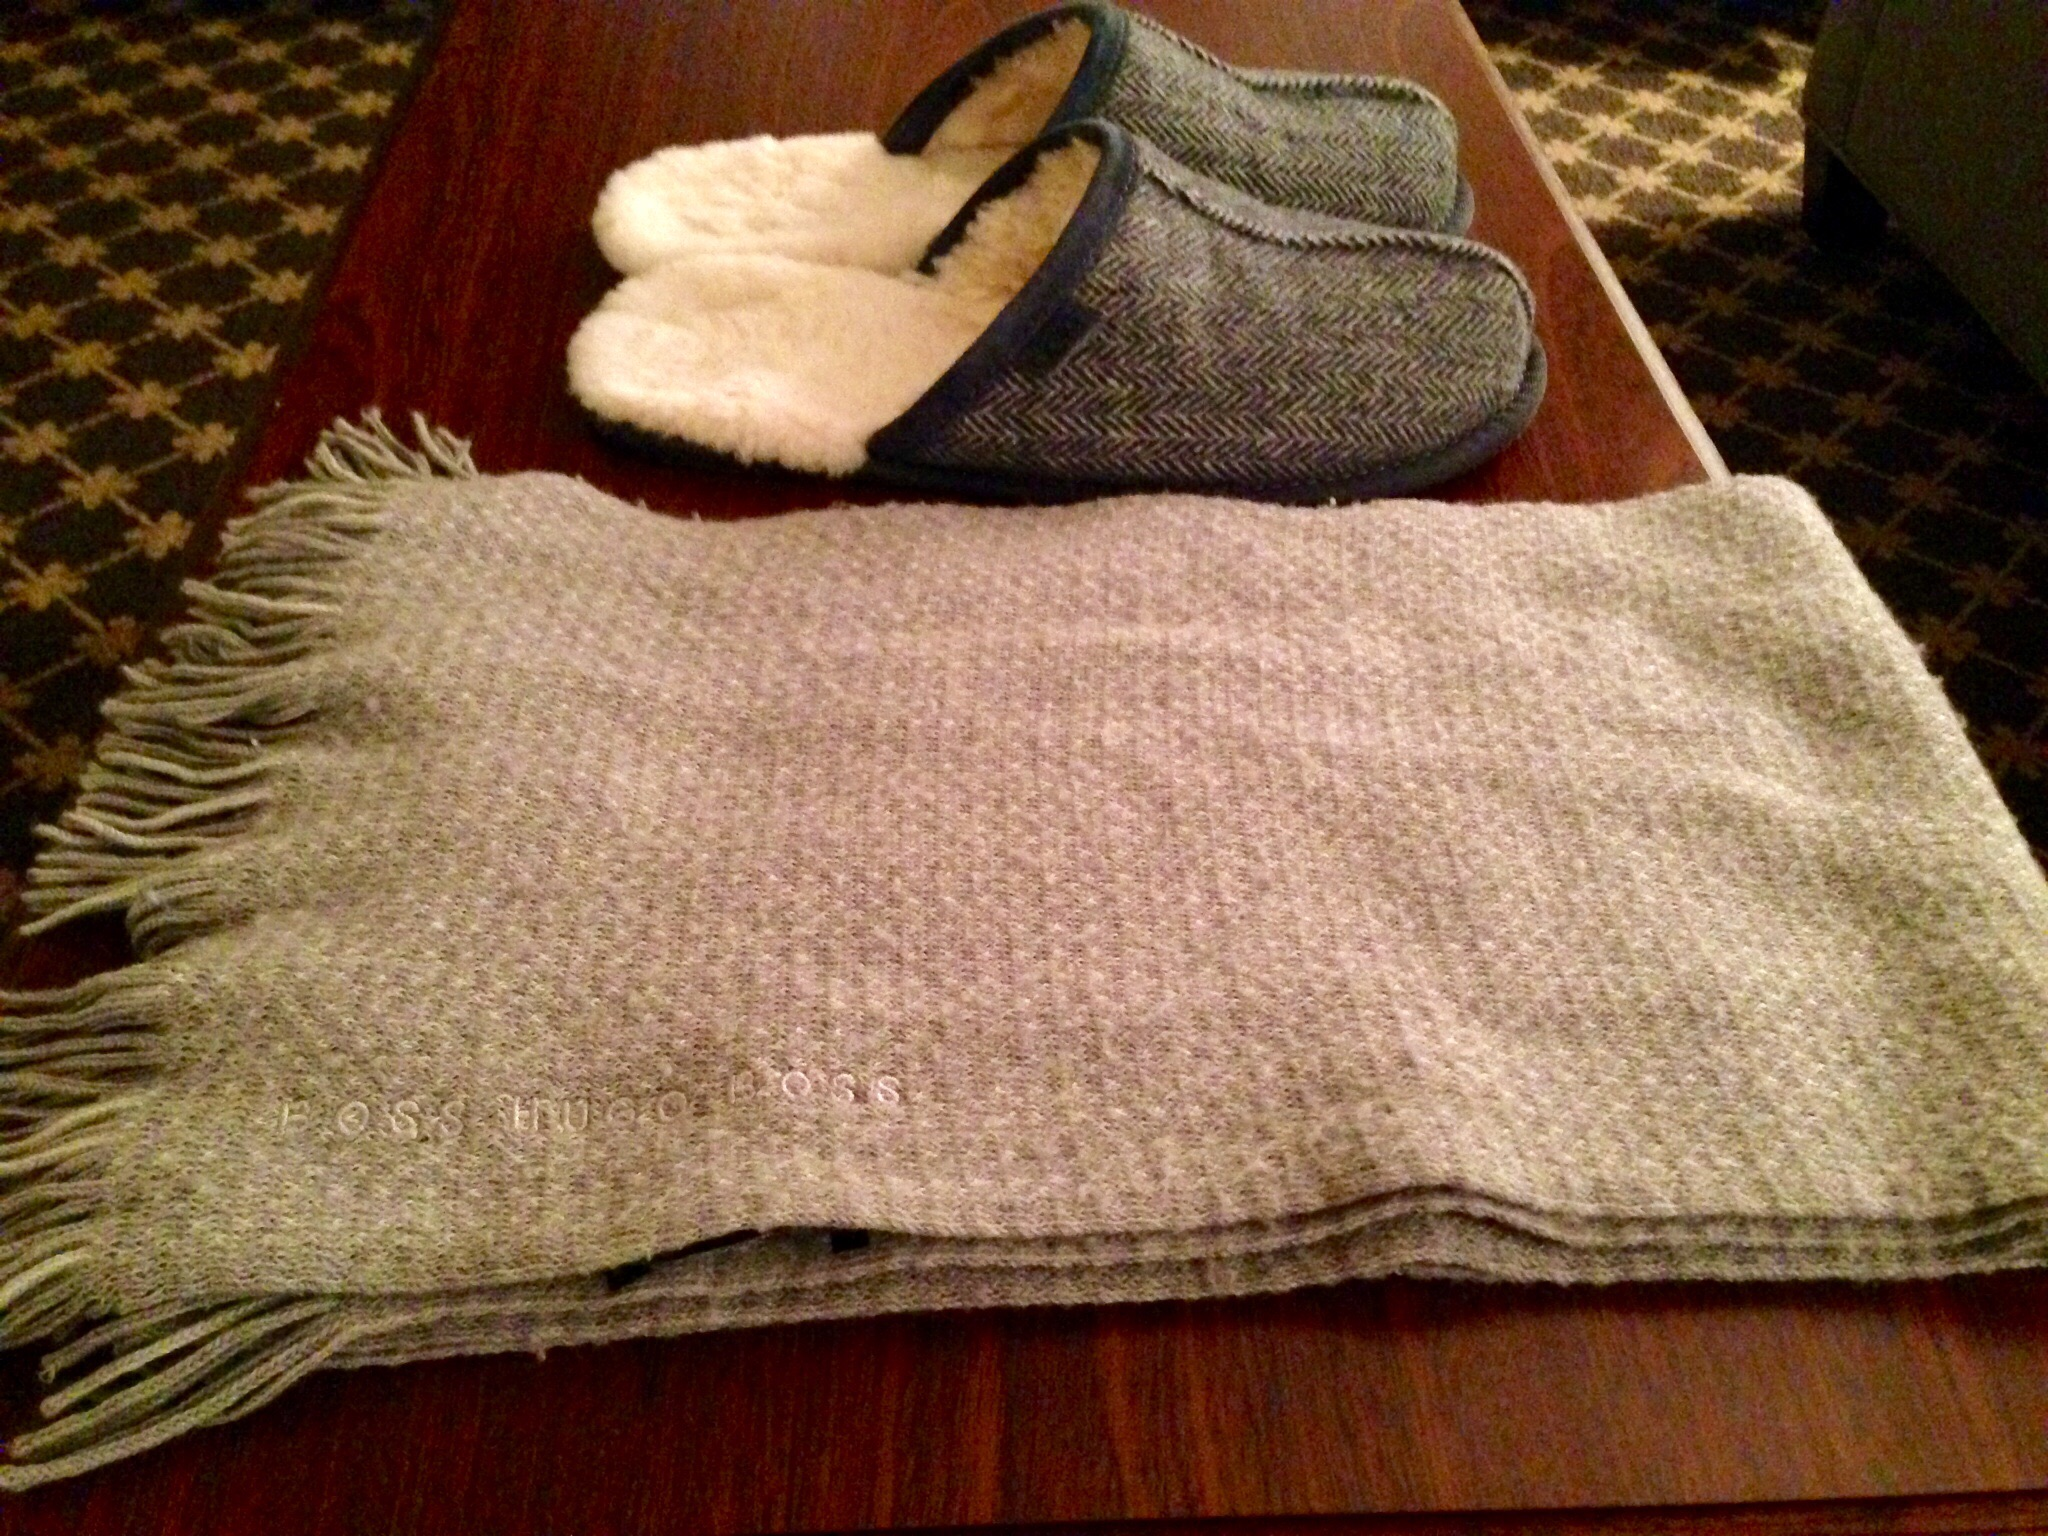 A scarf and UGG's wool sleepers keep me warm as the weather begins to cool down.